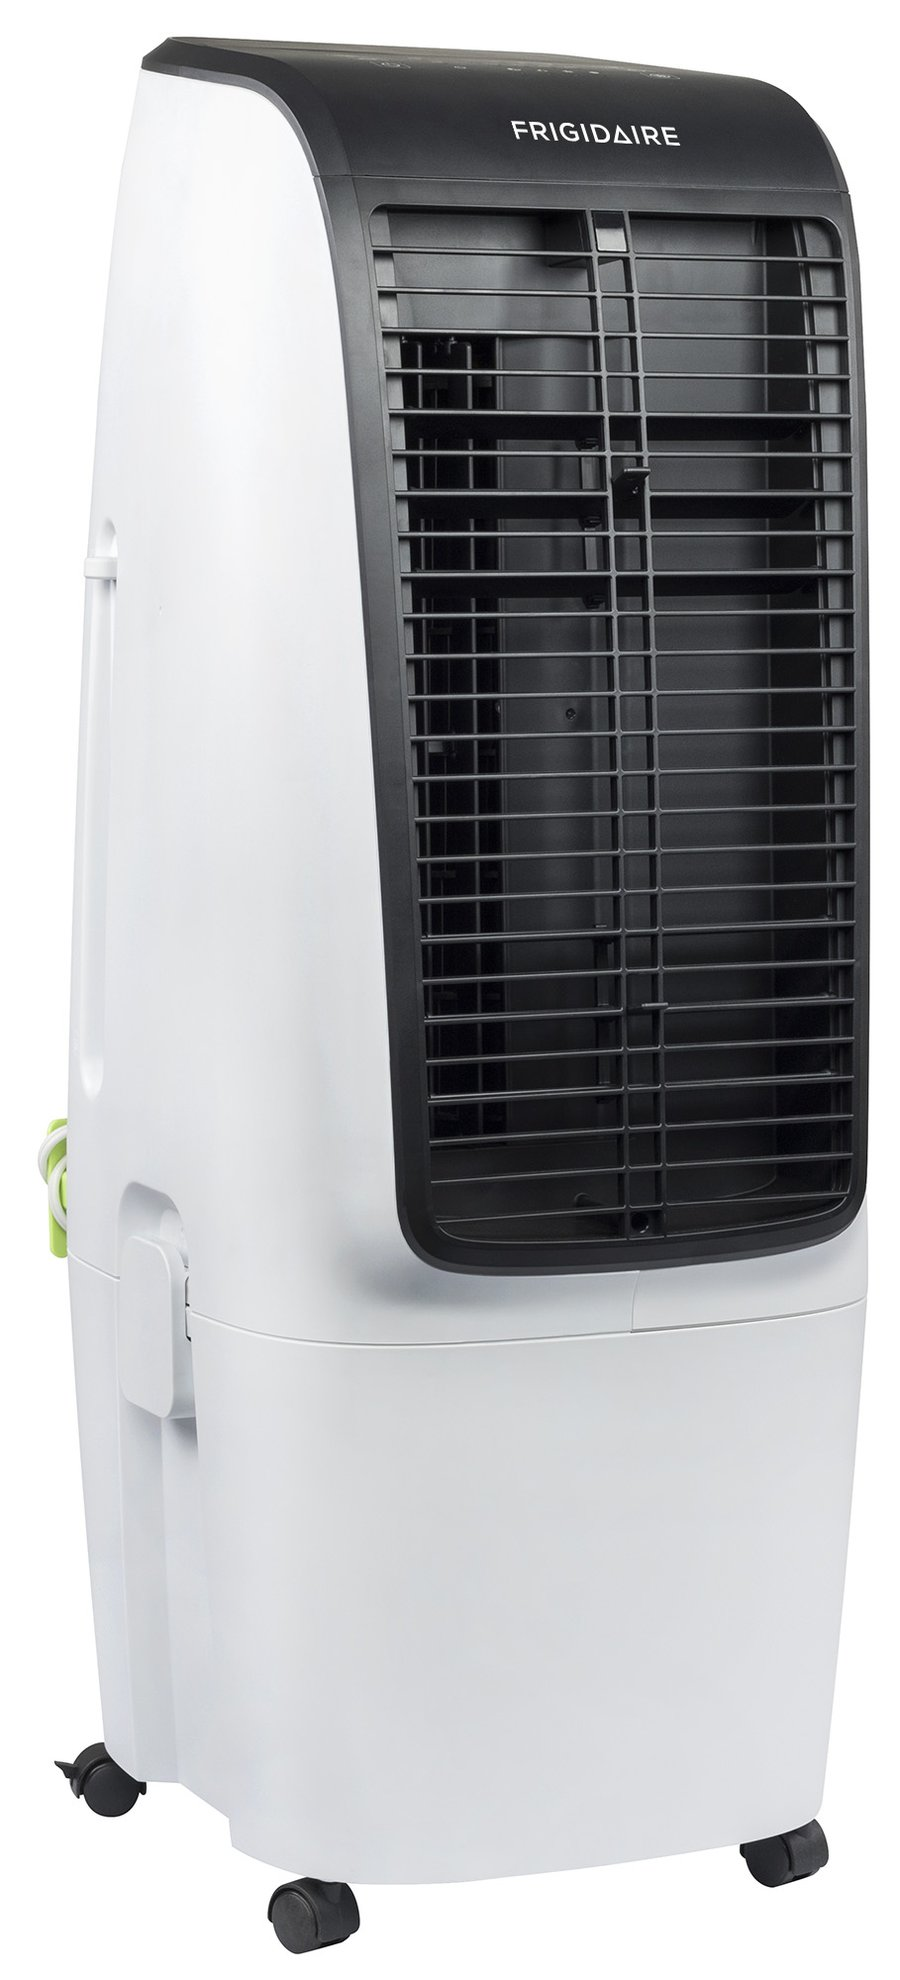 Frigidaire 2 In 1 Evaporative Air Cooler And Fan 350 Sq Ft Evaporative Air Cooler Swamp Cooler Air Cooler